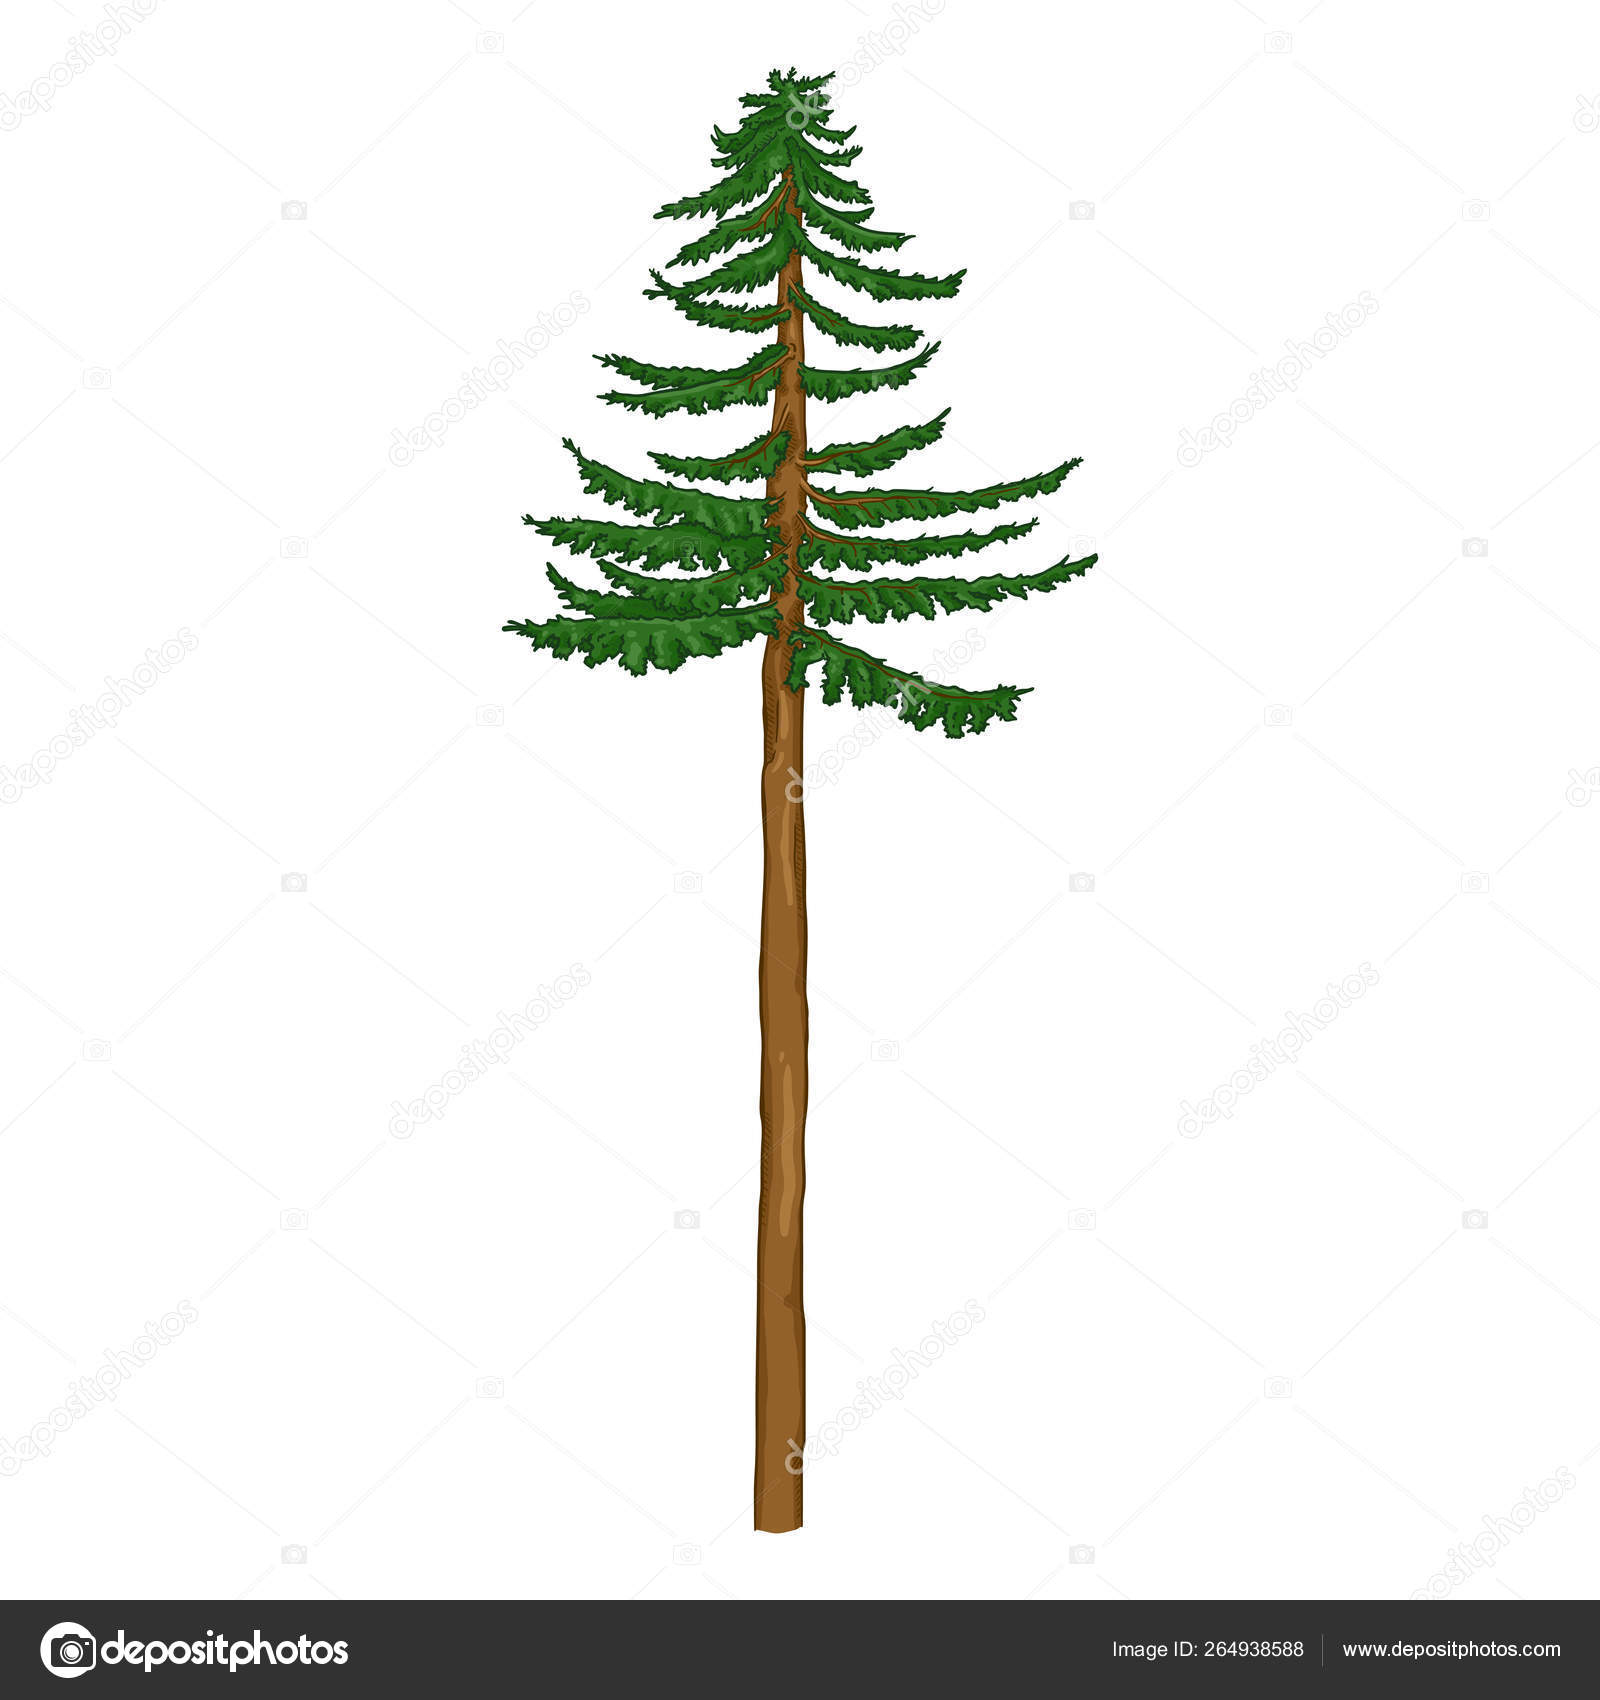 Vector Cartoon Pine Tree With Long Trunk Stock Vector C Nikiteev 264938588 Free vector cartoon trees to create stickers, decals, public signs, company logos. vector cartoon pine tree with long trunk stock vector c nikiteev 264938588